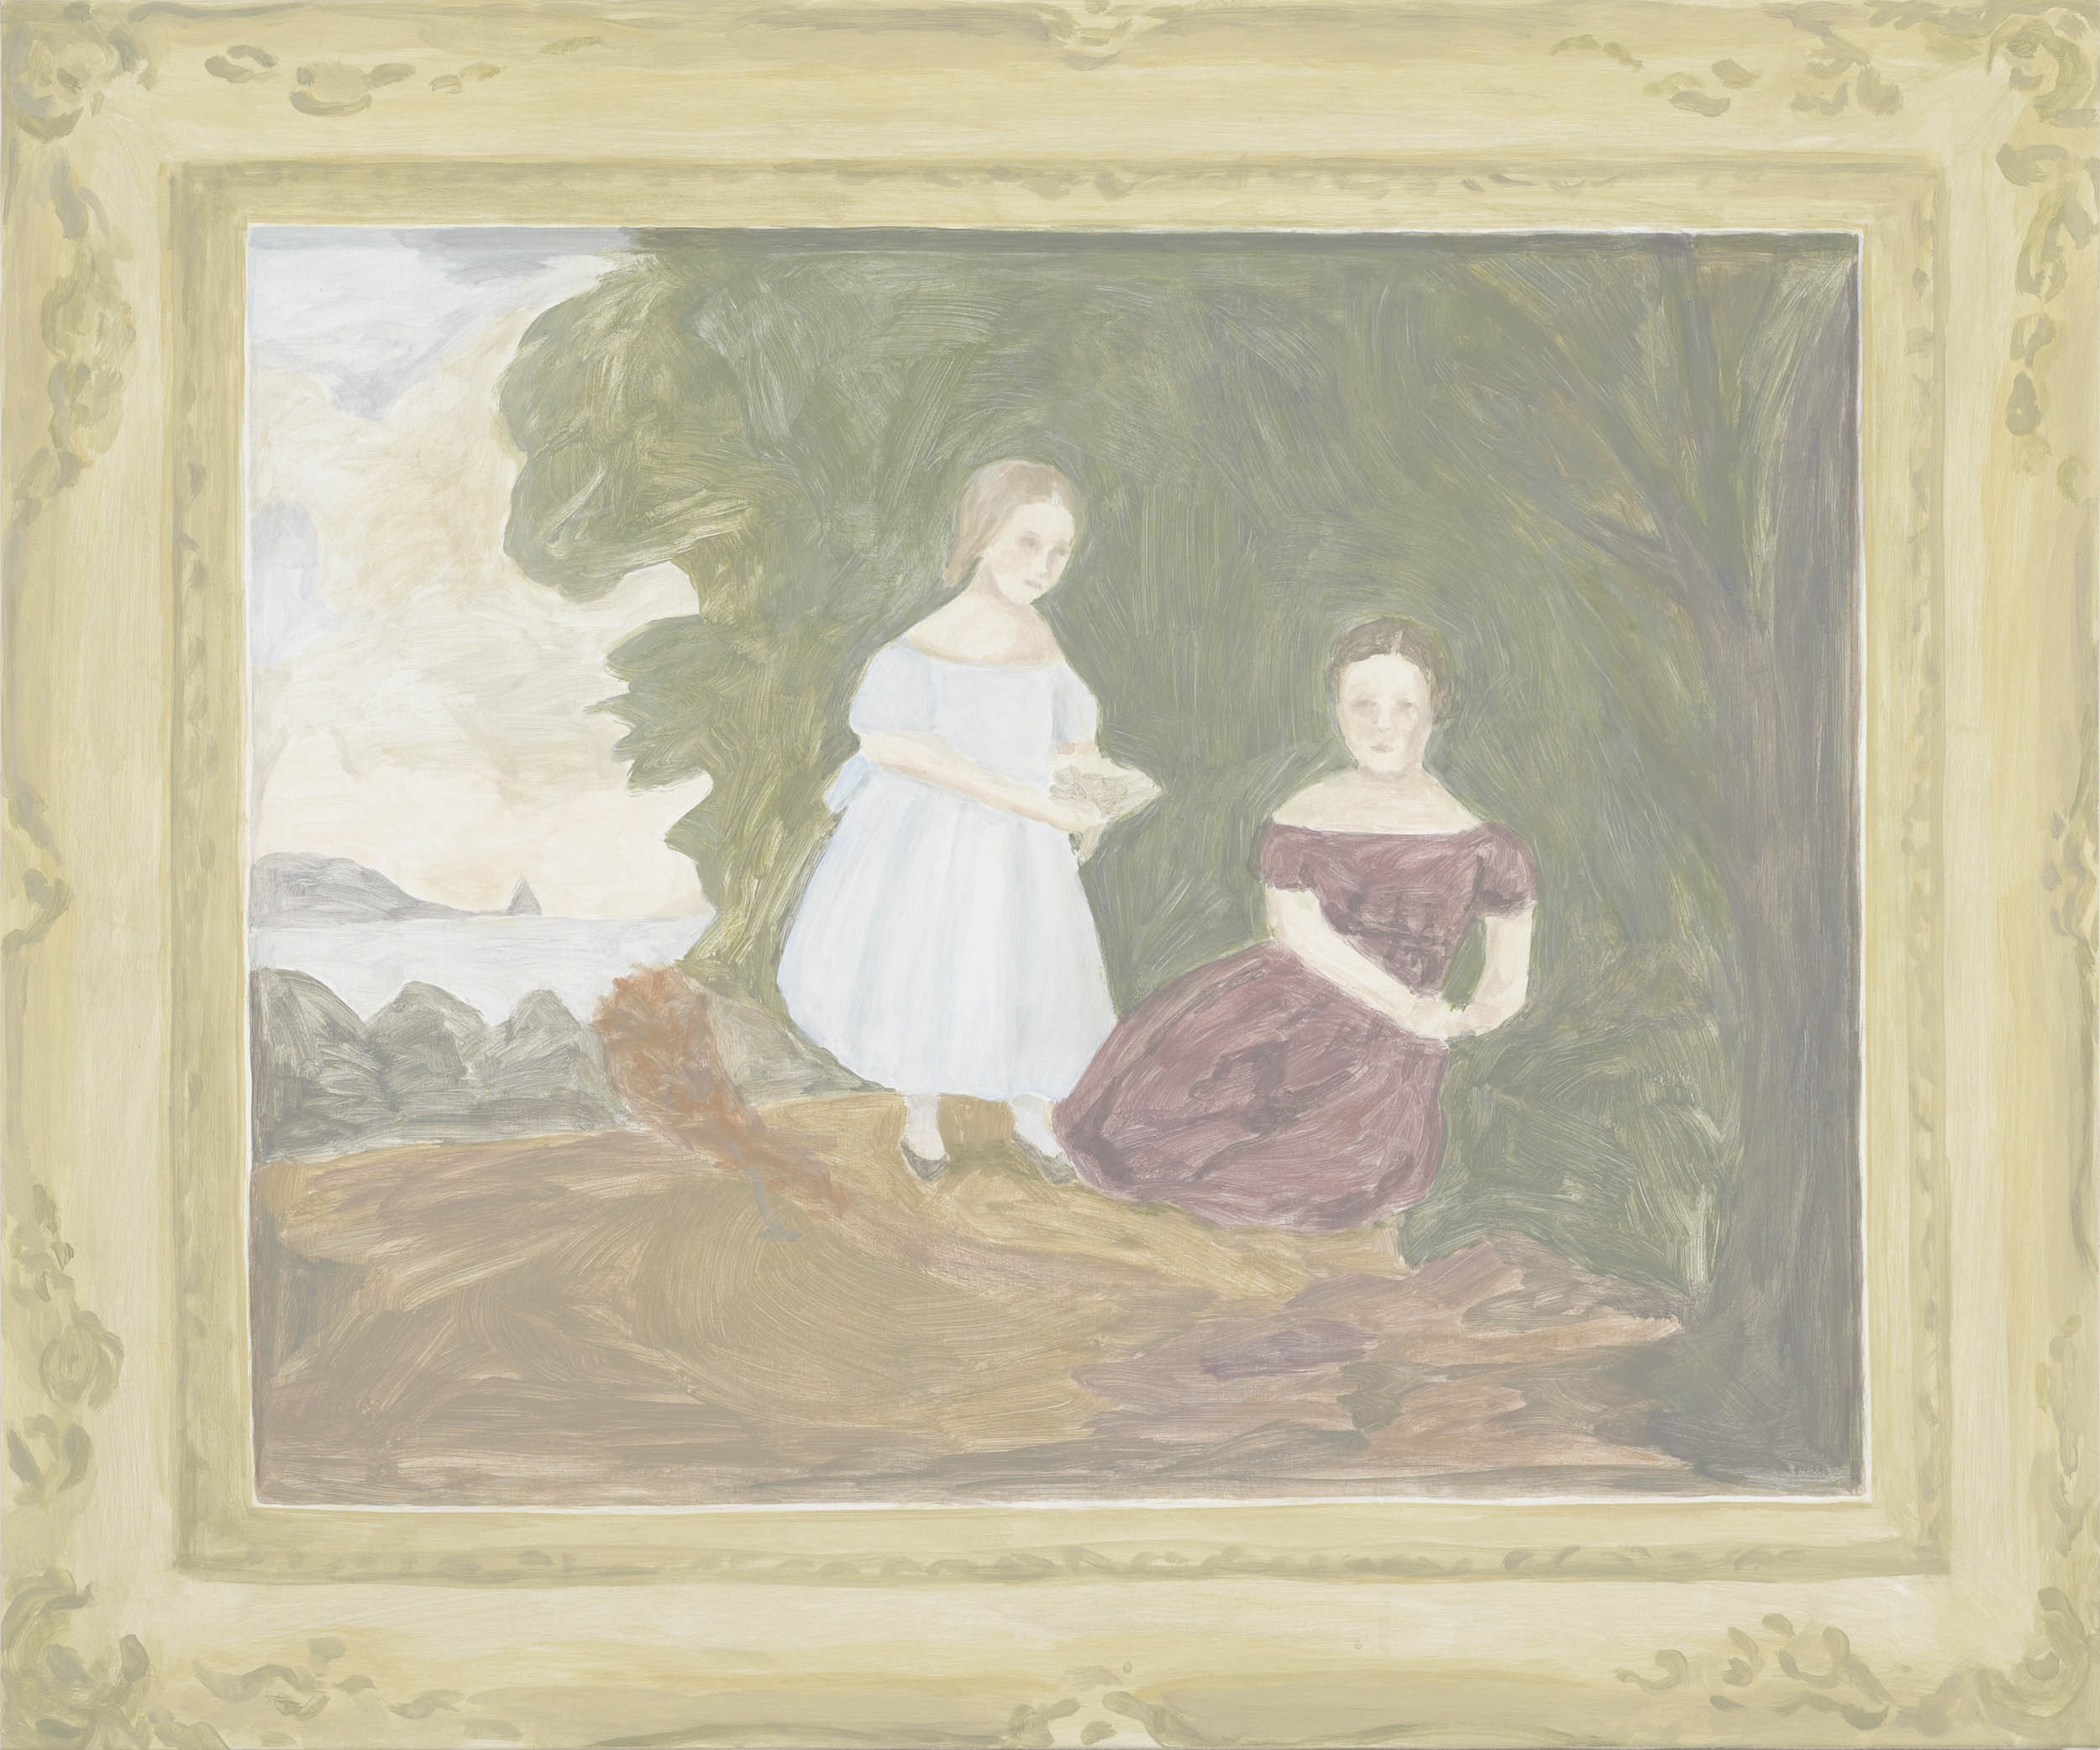 Framed Painting: Two Girls, acrylic on canvas over board, 30 x 36 inches, 2012.   X2016.10,  Permanent.Collection, 2016.  Paintings of Paintings , Talley Dunn Gallery, 2012.